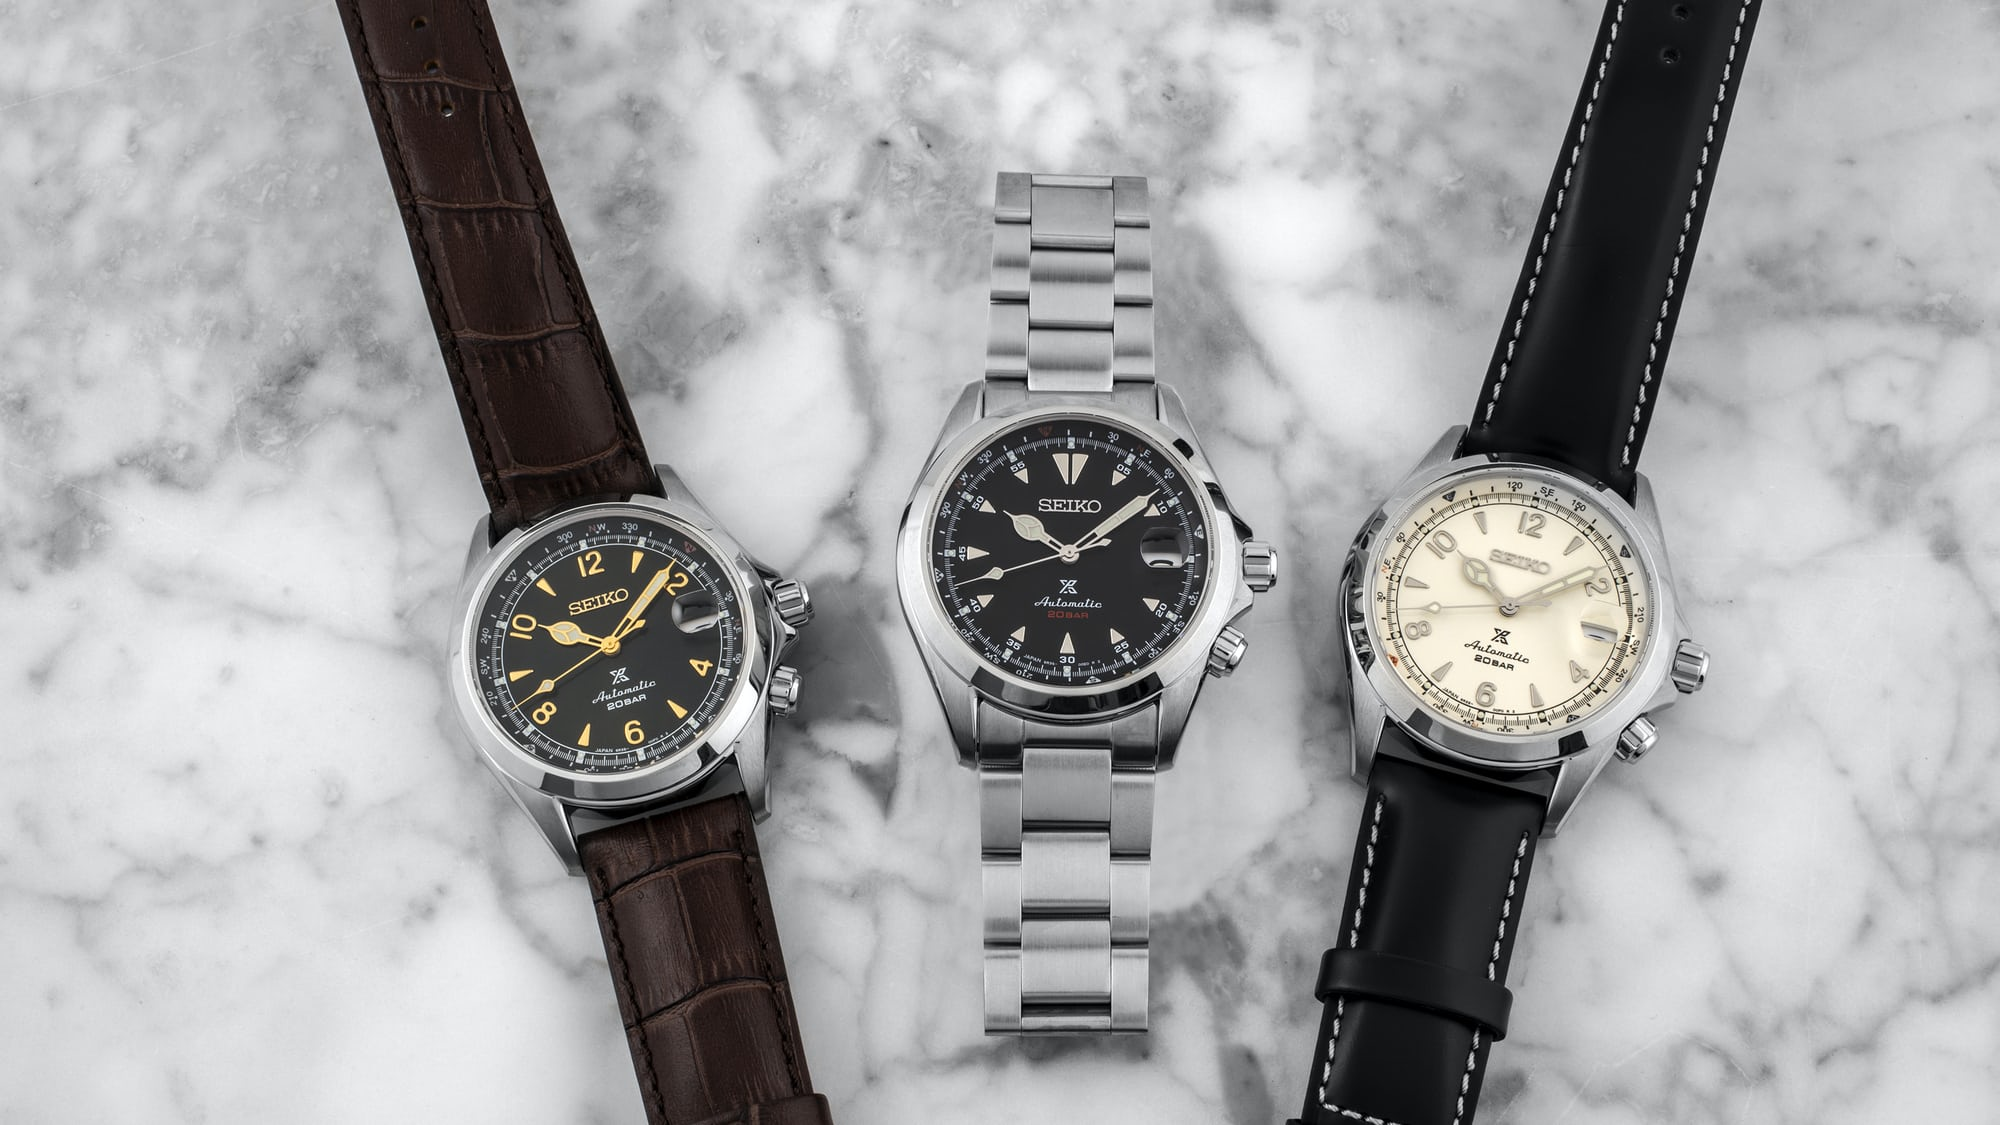 Introducing: Three Alpinist-Inspired Seiko Prospex Watches